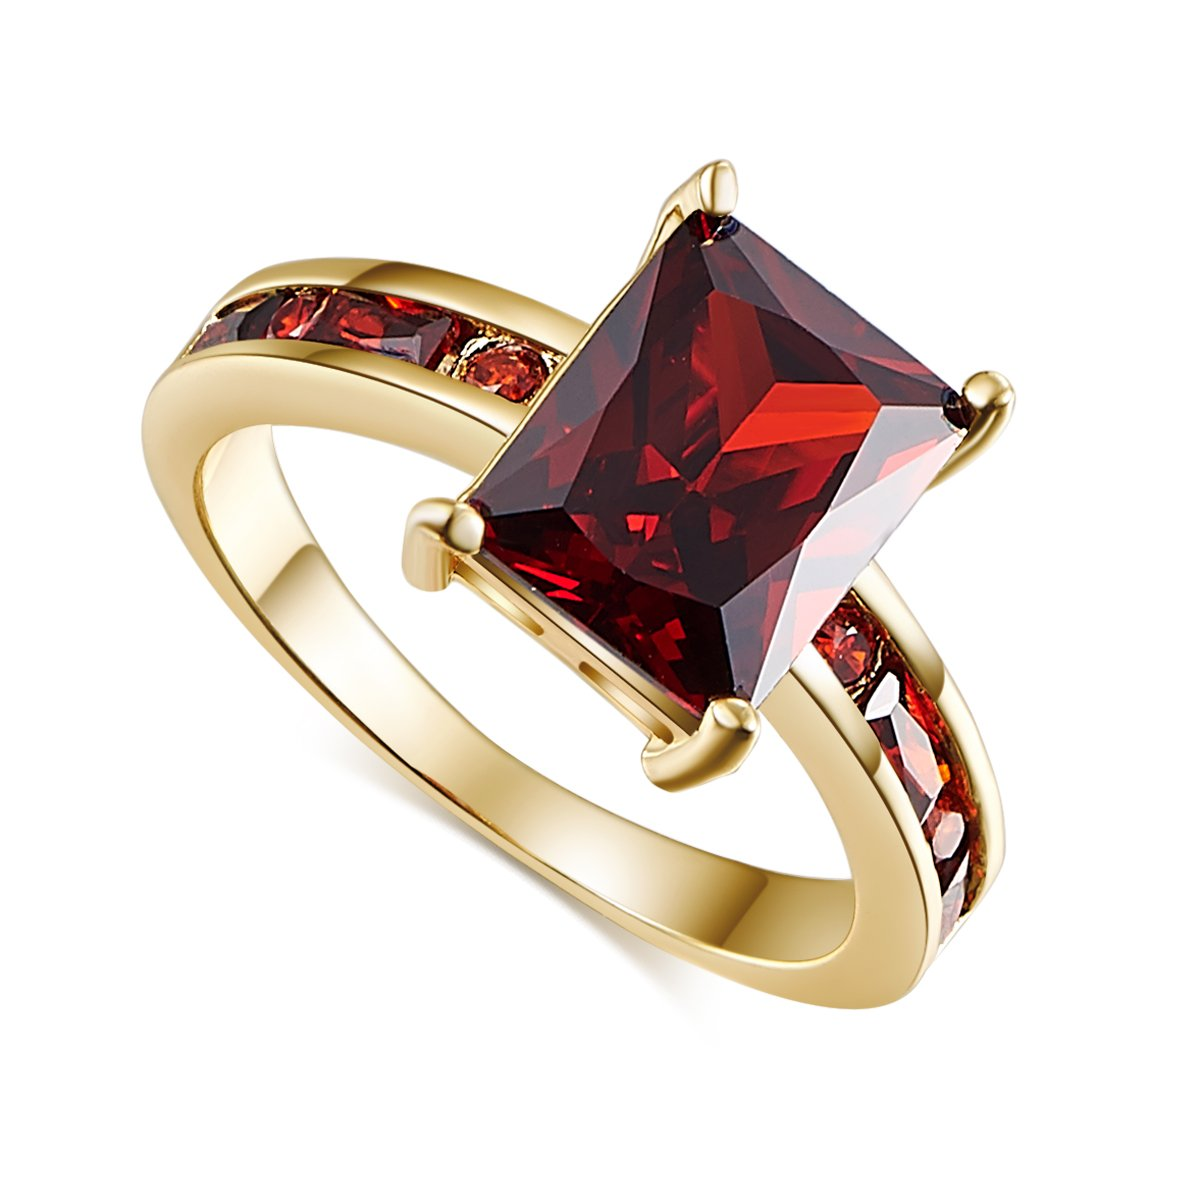 Psiroy Yellow Gold Plated Radiant Cut Created Garnet Anniversary Ring Size 9